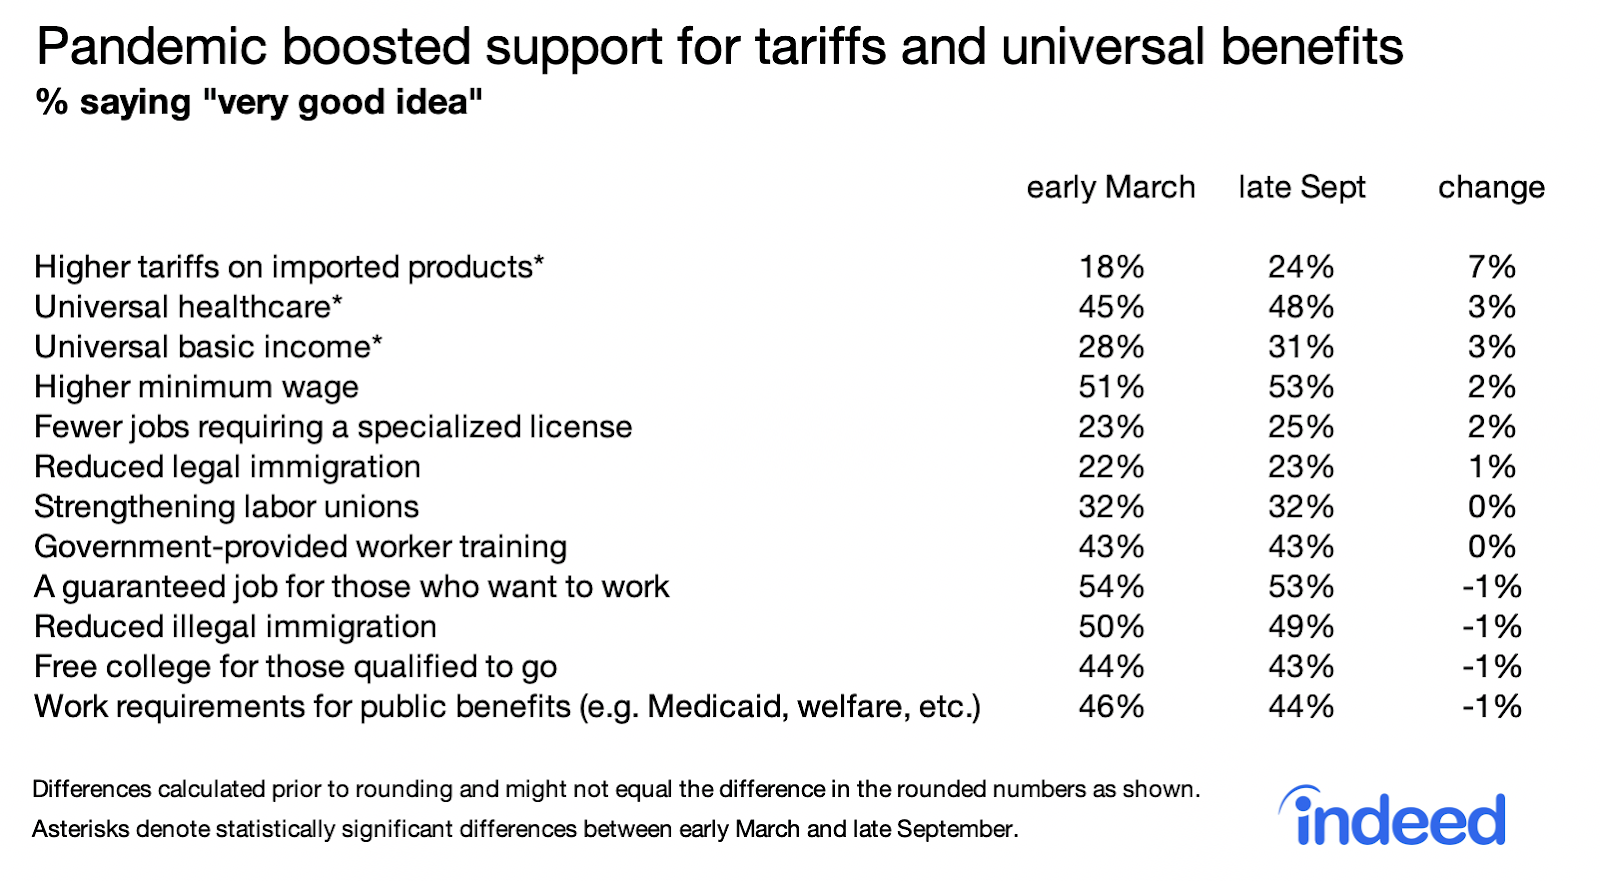 Table showing pandemic boosted support for tariffs and universal benefits